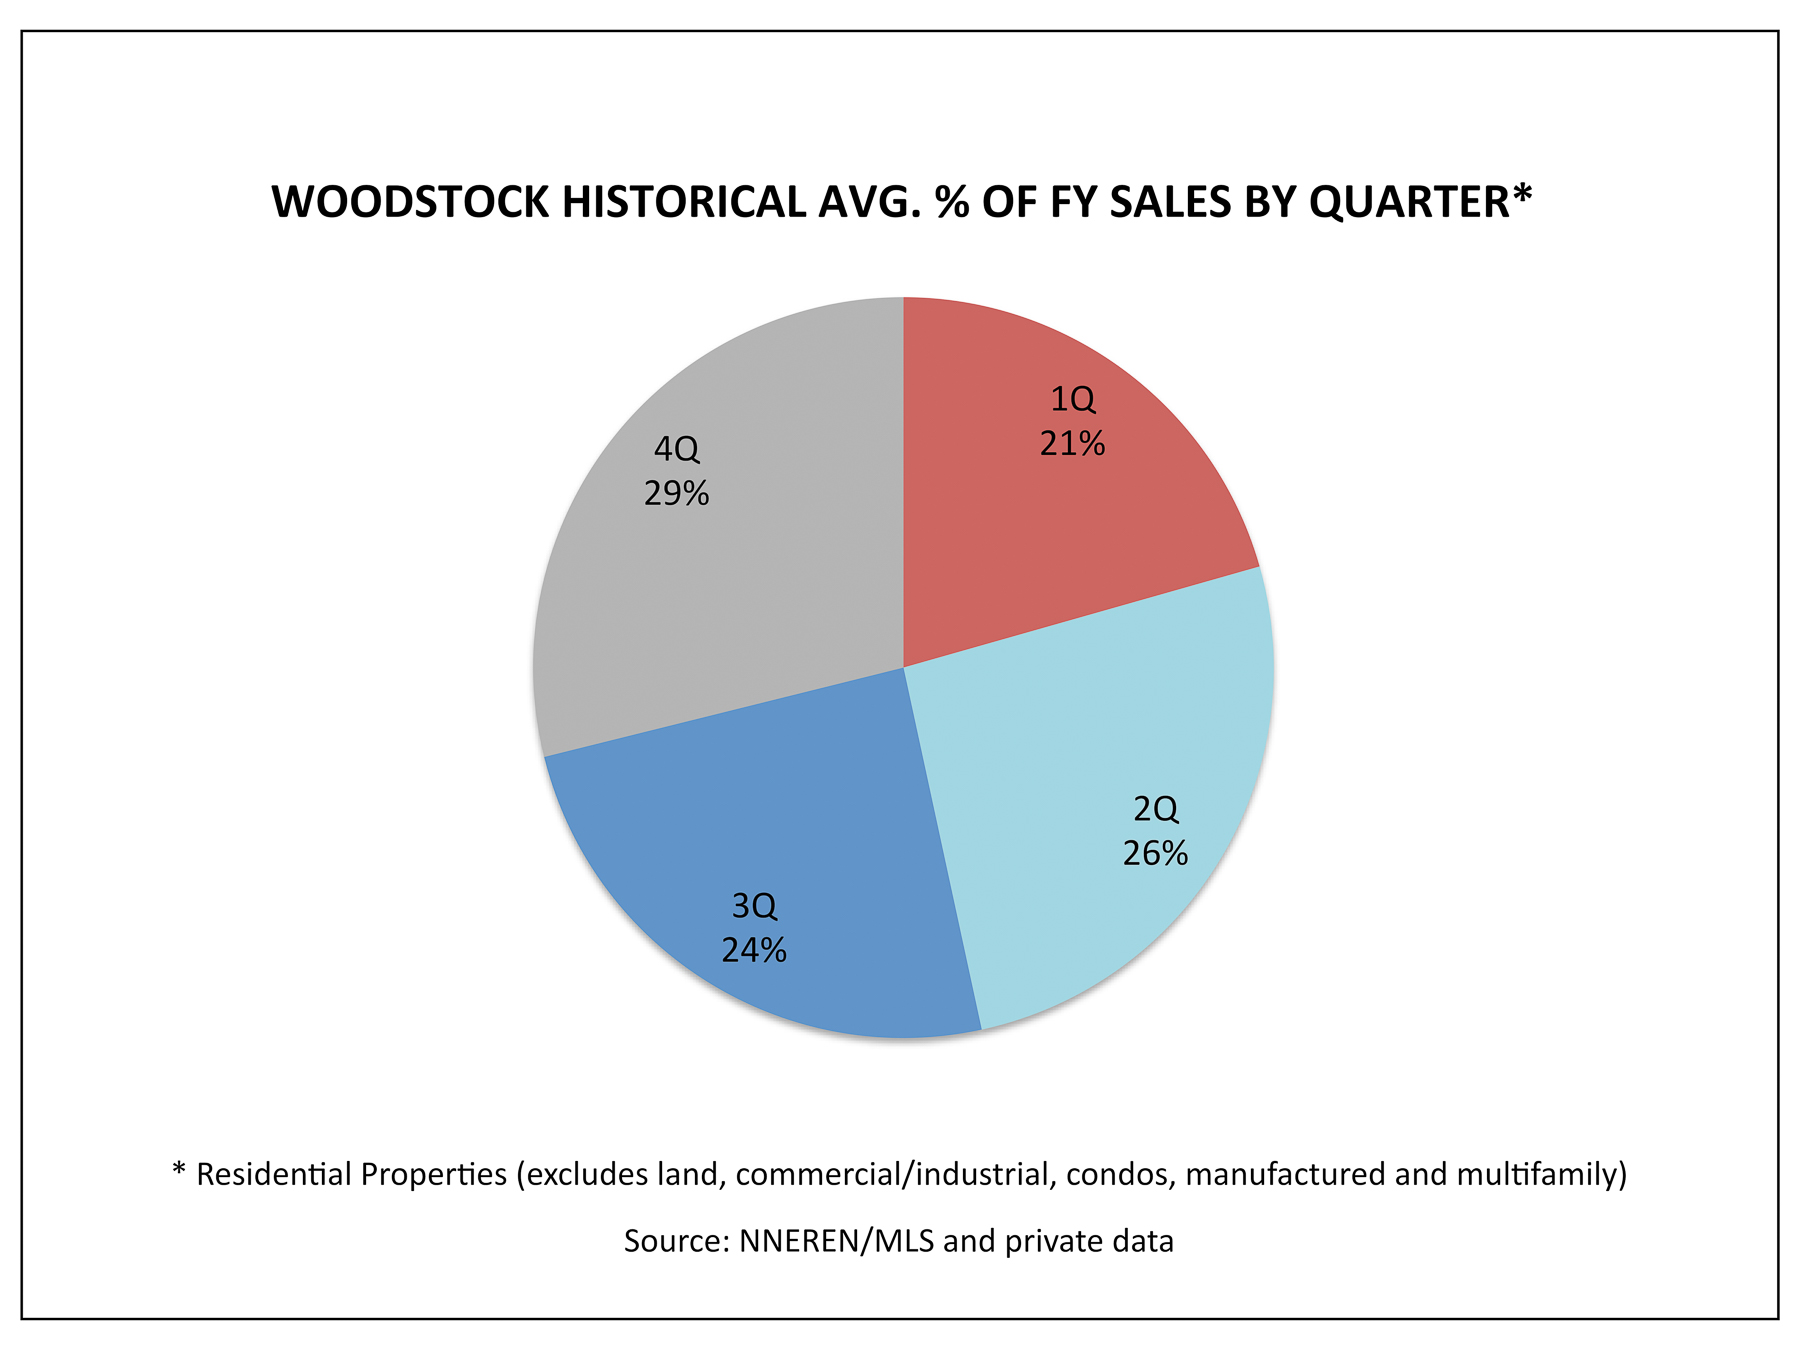 Woodstock VT Real Estate - Historical 1Q Home Sales